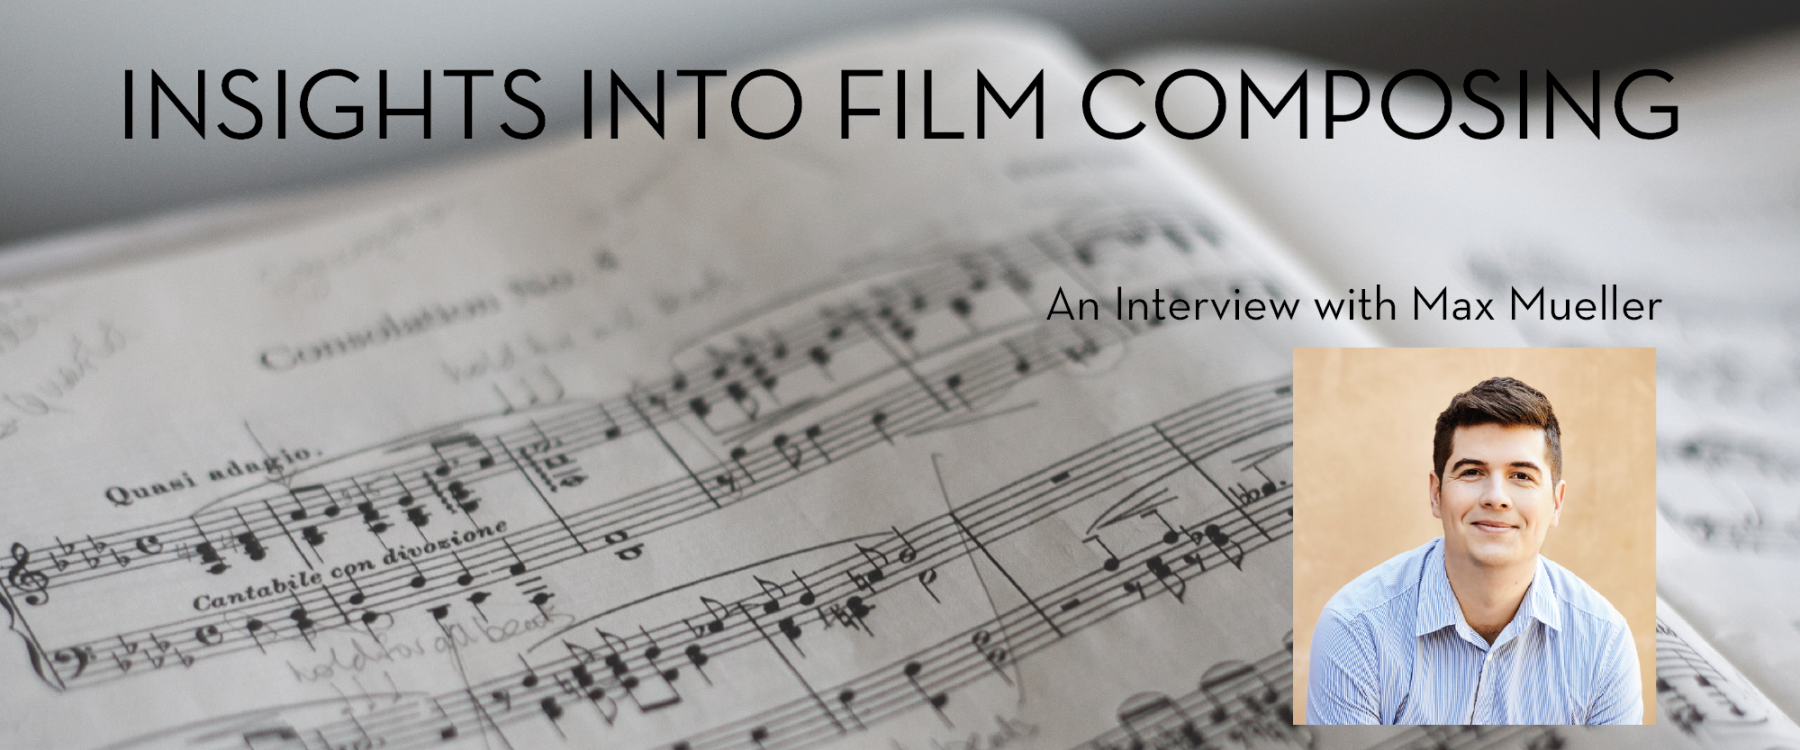 FilmComposing Header-02